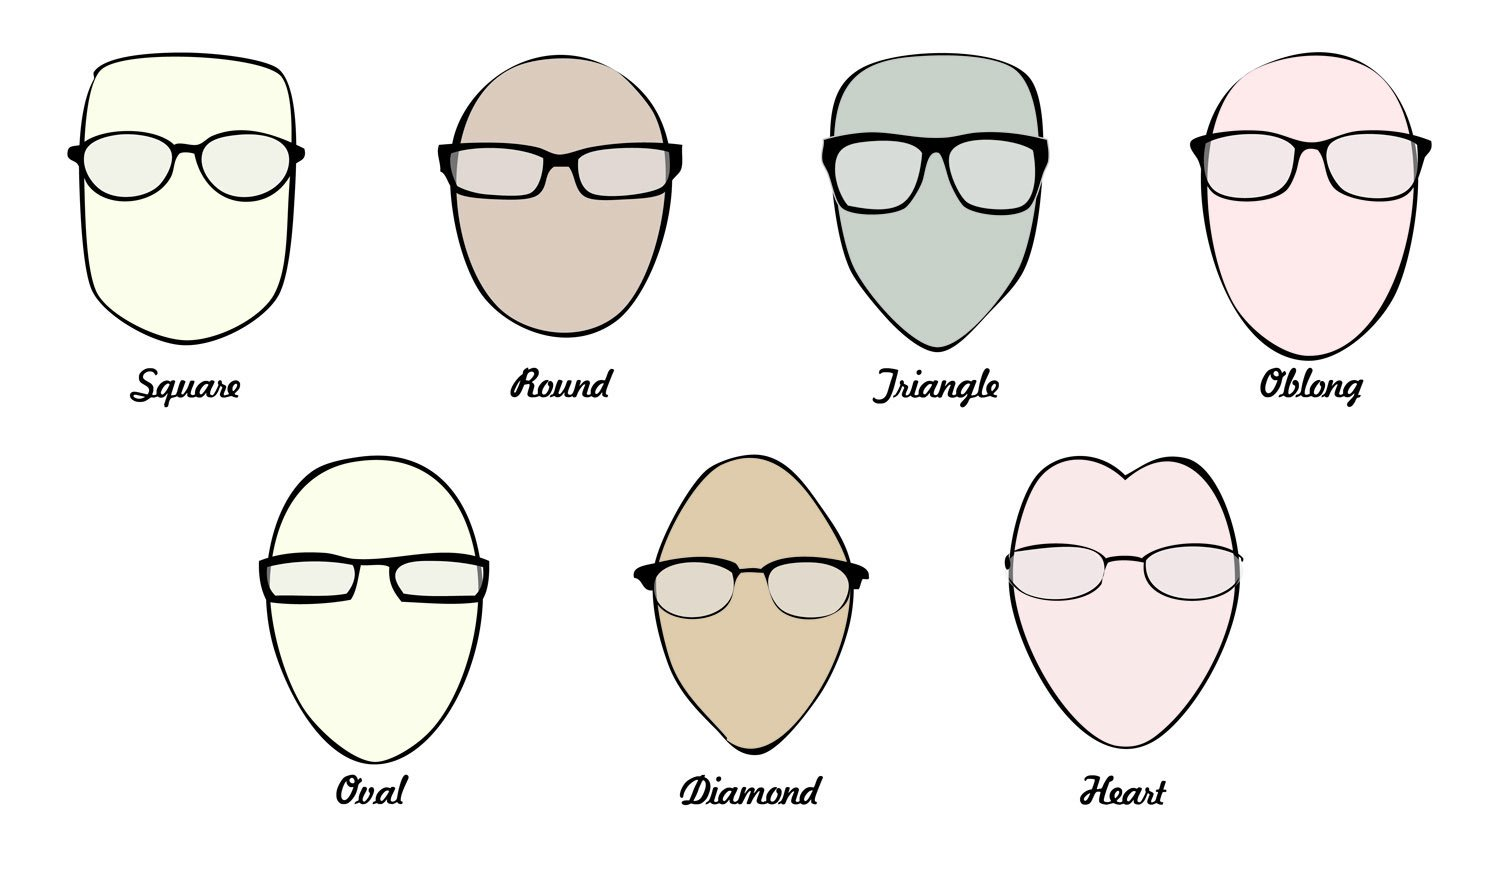 Types Of Faces And The Glass Frames That Best Fit Them ...